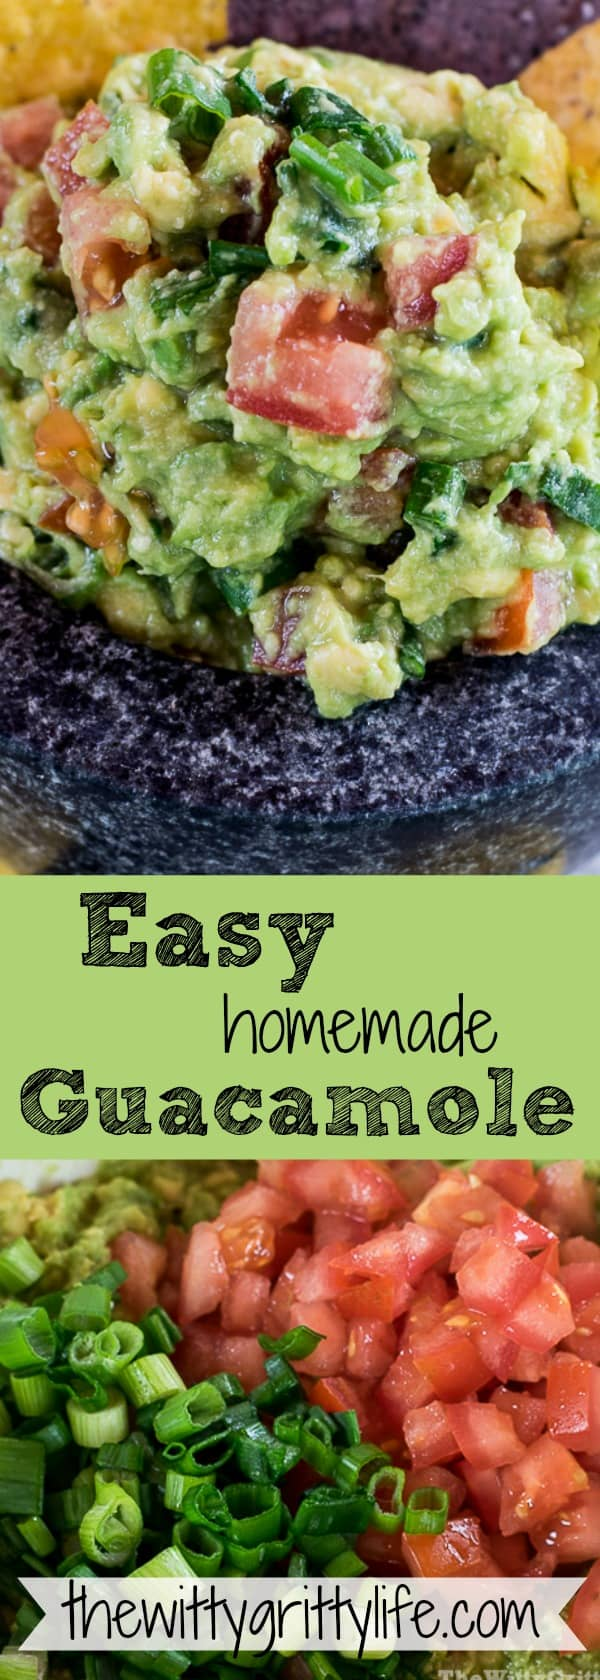 Guacamole is the perfect addition to any summer party. No need to settle for the store bought stuff, when you can create this easy recipe and impress your family and guests with avocado goodness!